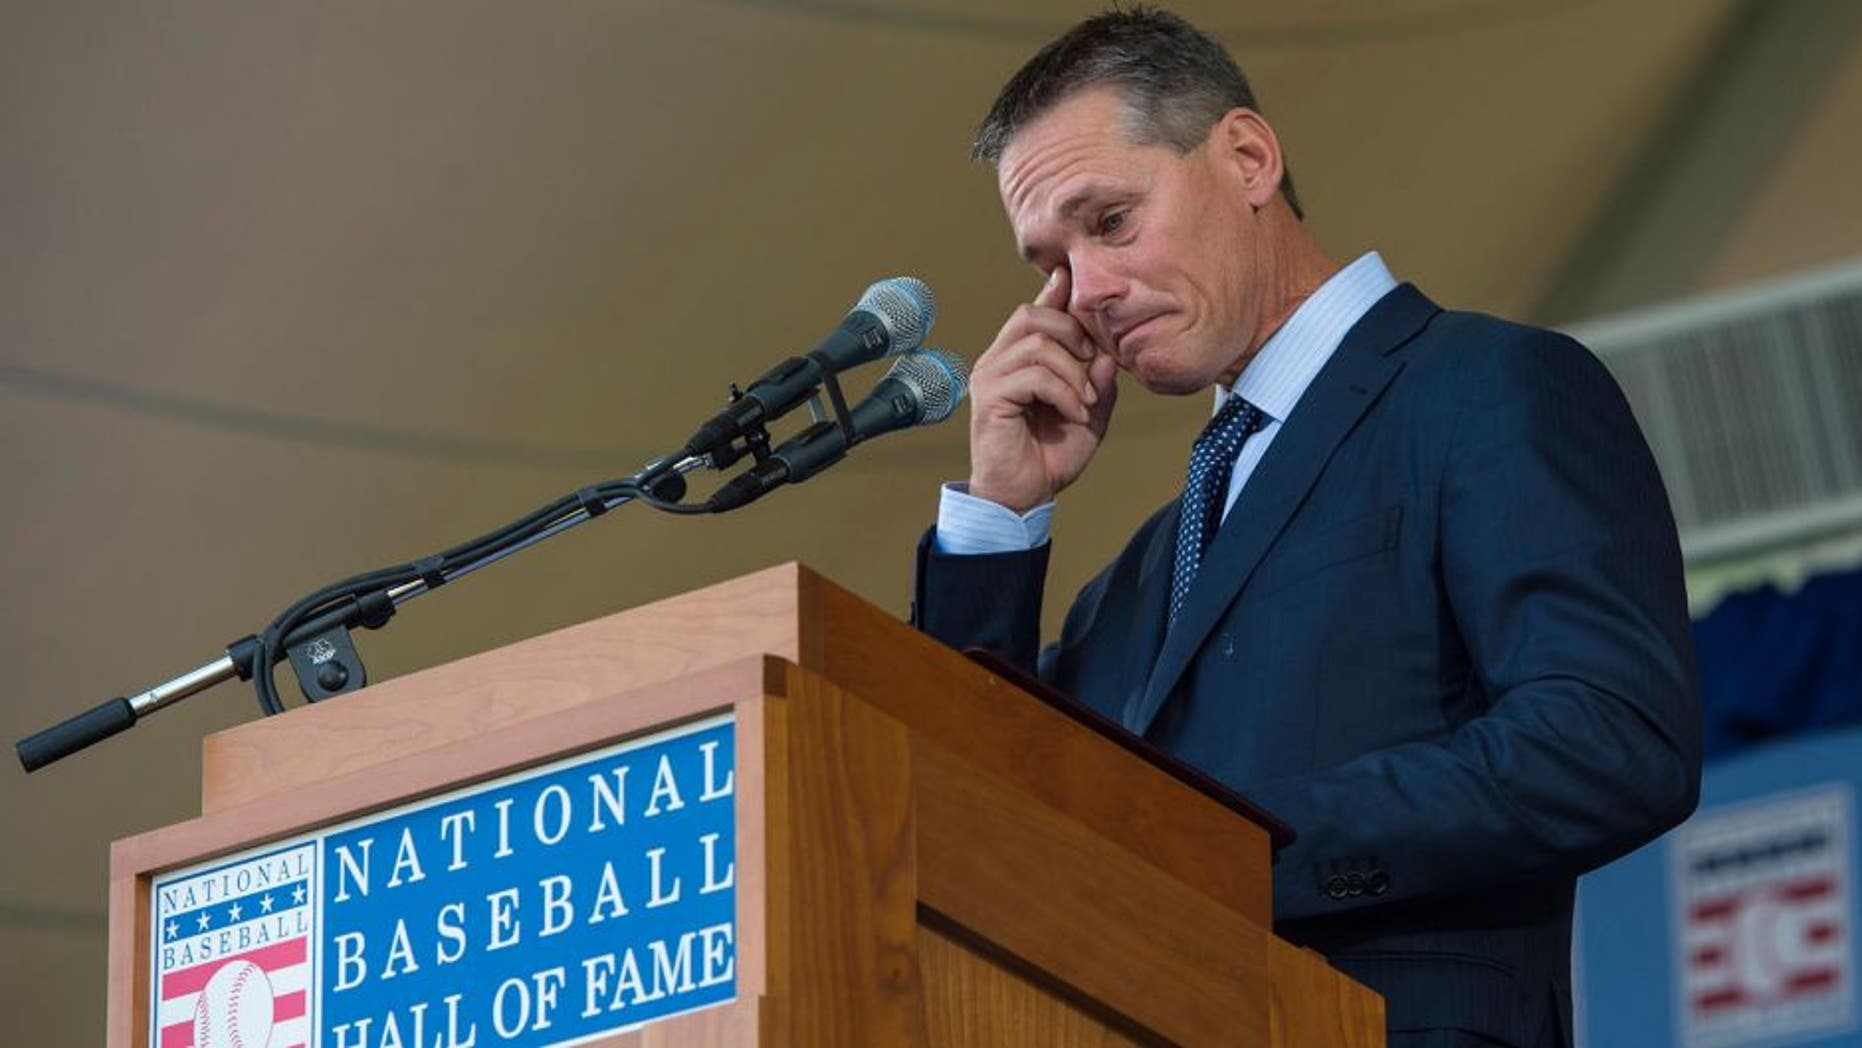 Jul 26, 2015; Cooperstown, NY, USA; Hall of Fame Inductee Craig Biggio reacts during his acceptance speech into the Hall of Fame Induction Ceremonies at Clark Sports Center. Mandatory Credit: Gregory J. Fisher-USA TODAY Sports